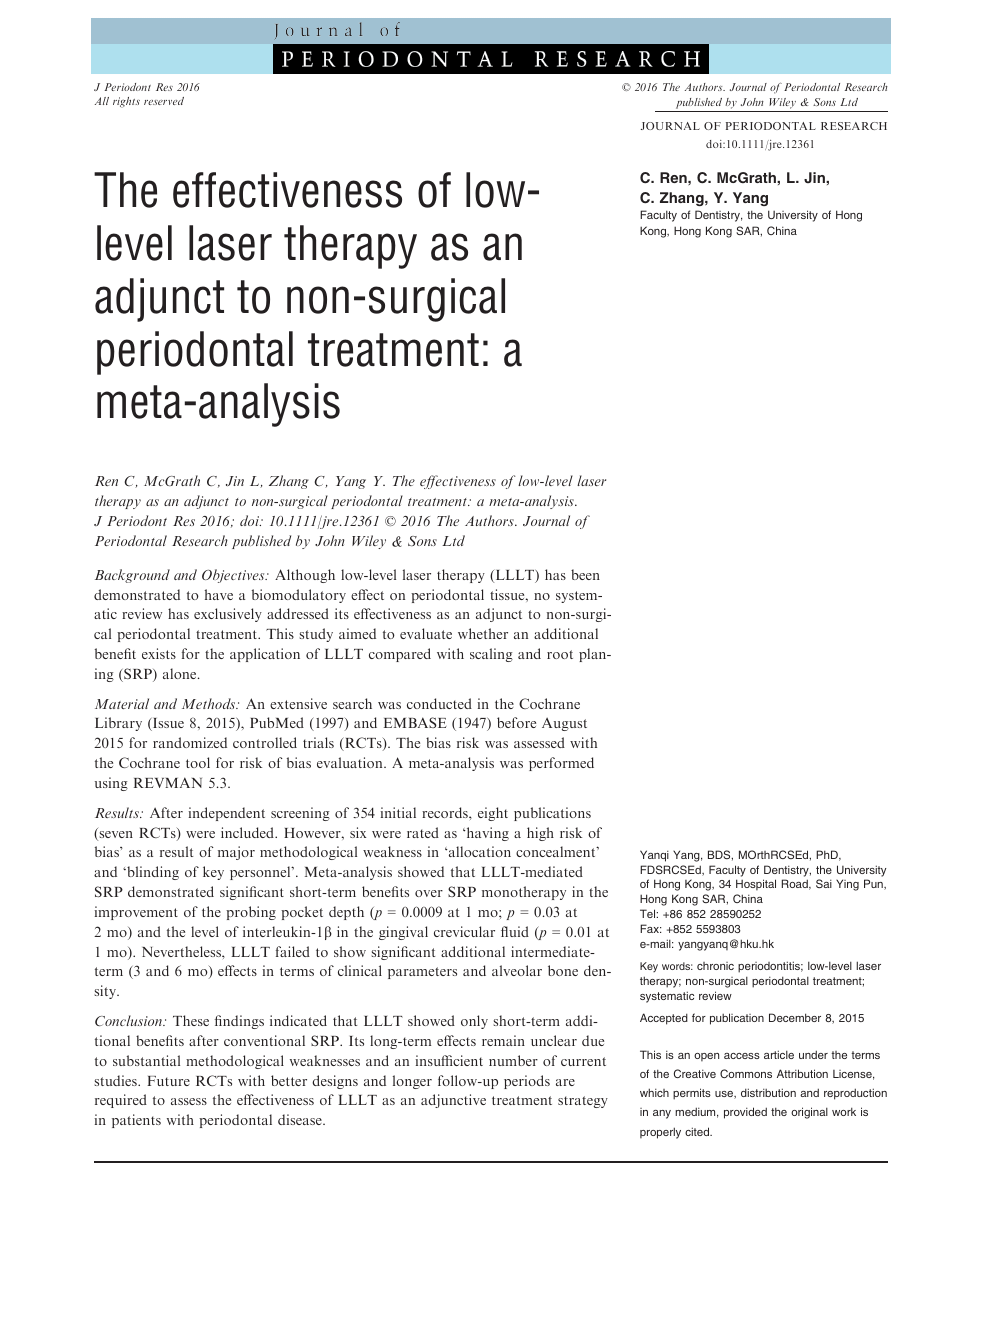 The effectiveness of low-level laser therapy as an adjunct